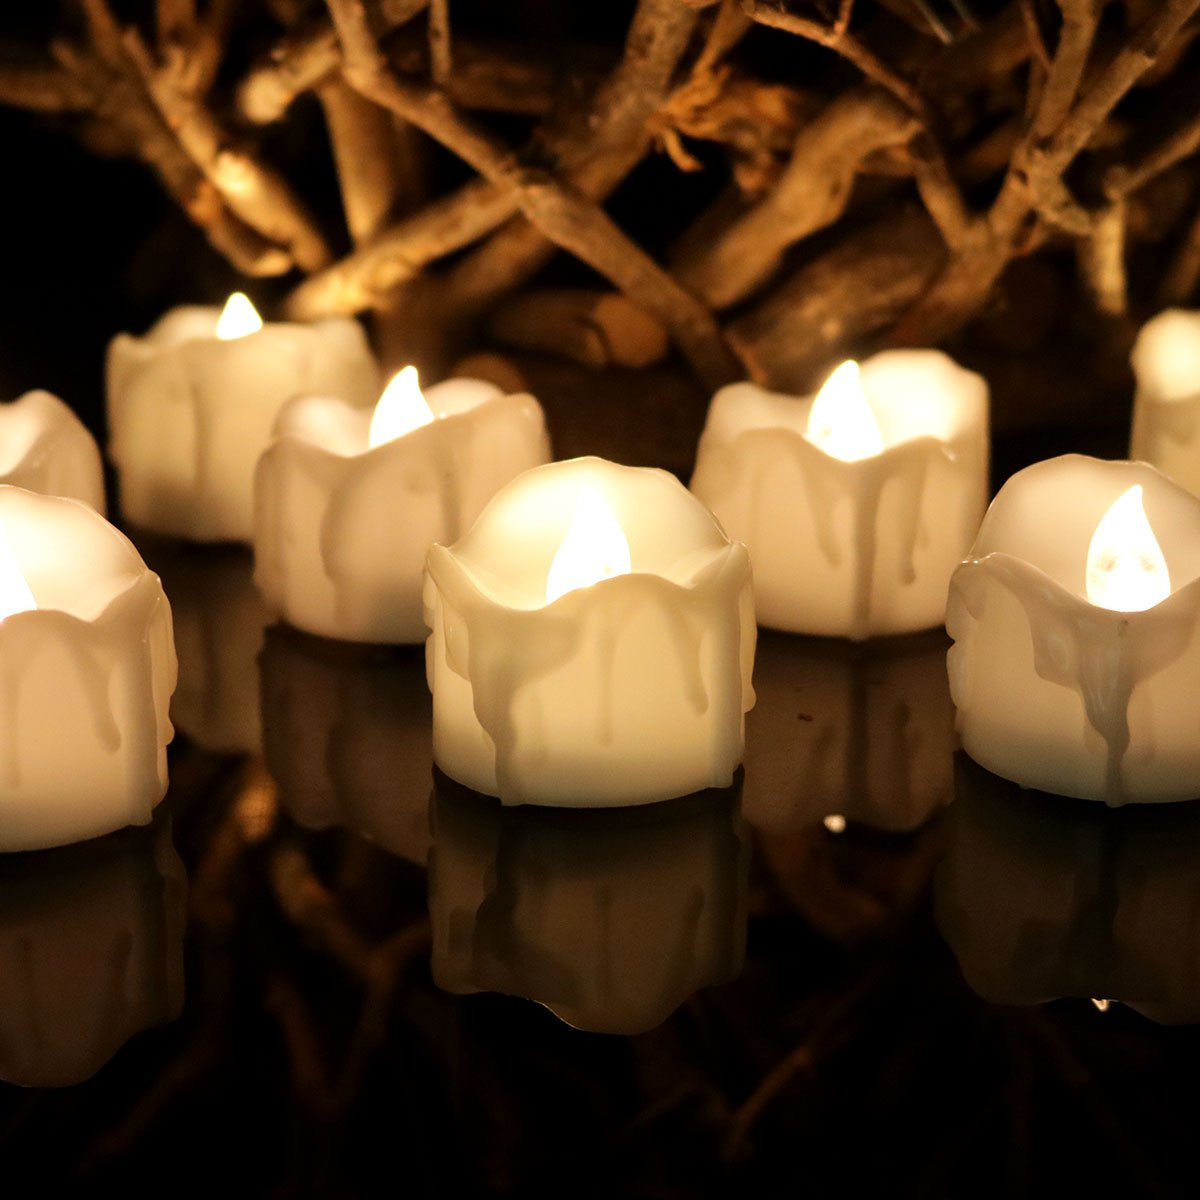 Youngerbaby 12pcs Warm White Flickering Tea Light Candles with Decor Rose Petals, Flameless Wax Dripped Battery-Powered LED Tealights For Wedding Christmas, Party, Room and Back Yard by Youngerbaby